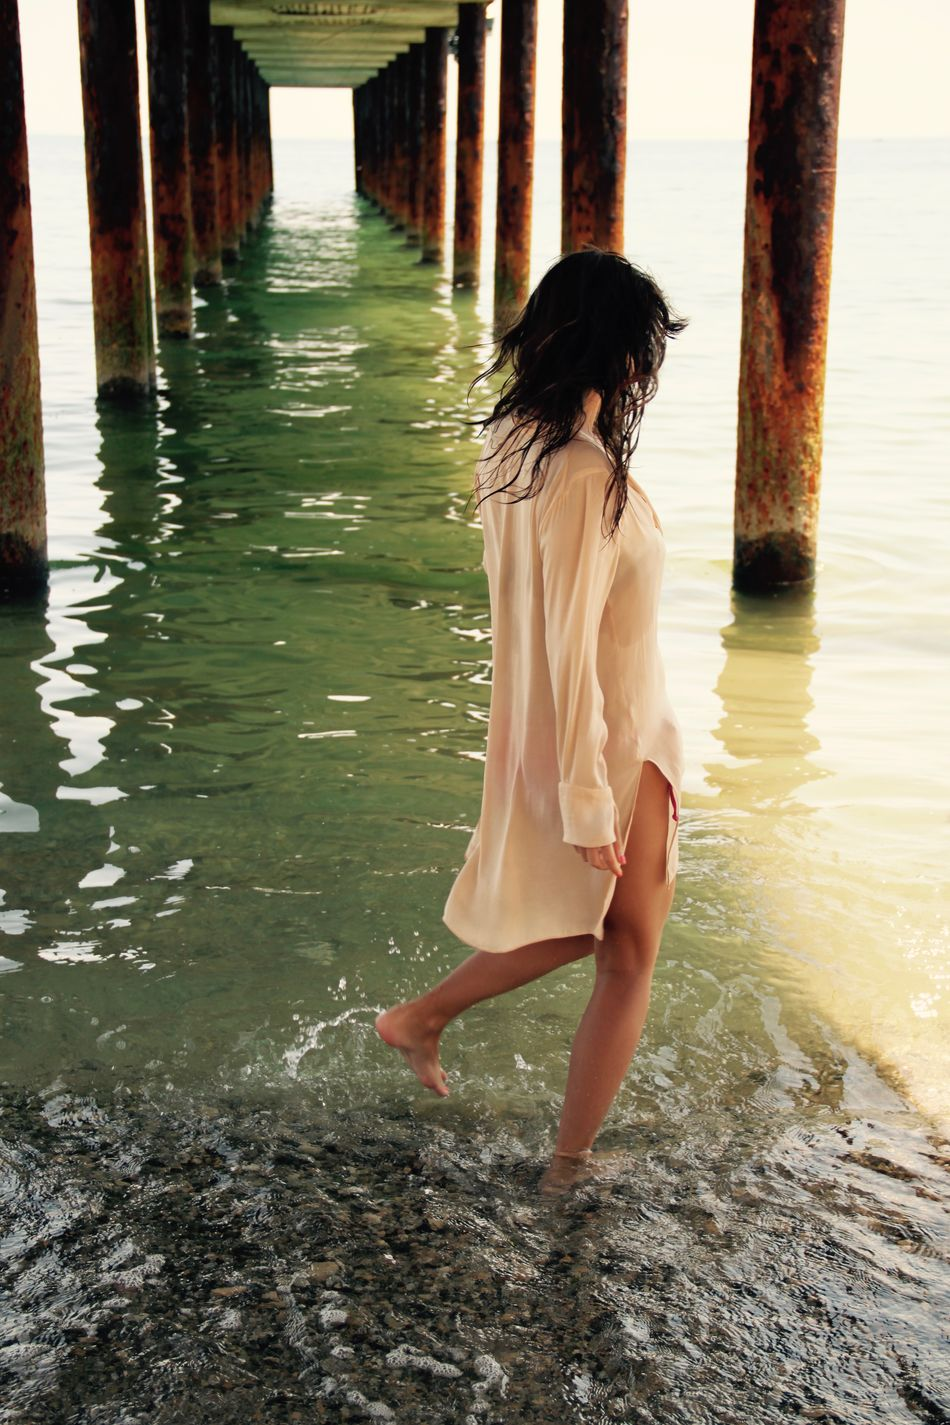 Beach Beach Life Beachphotography Beauty Beauty In Nature Black Sea Bulgaria Full Length Golden Sands Leisure Activity Nature One Person One Woman Only Outdoors Sea Summertime Under Pier Vacation Water Way Forward Women Portraitwithoutface Portrait With Atmosphere